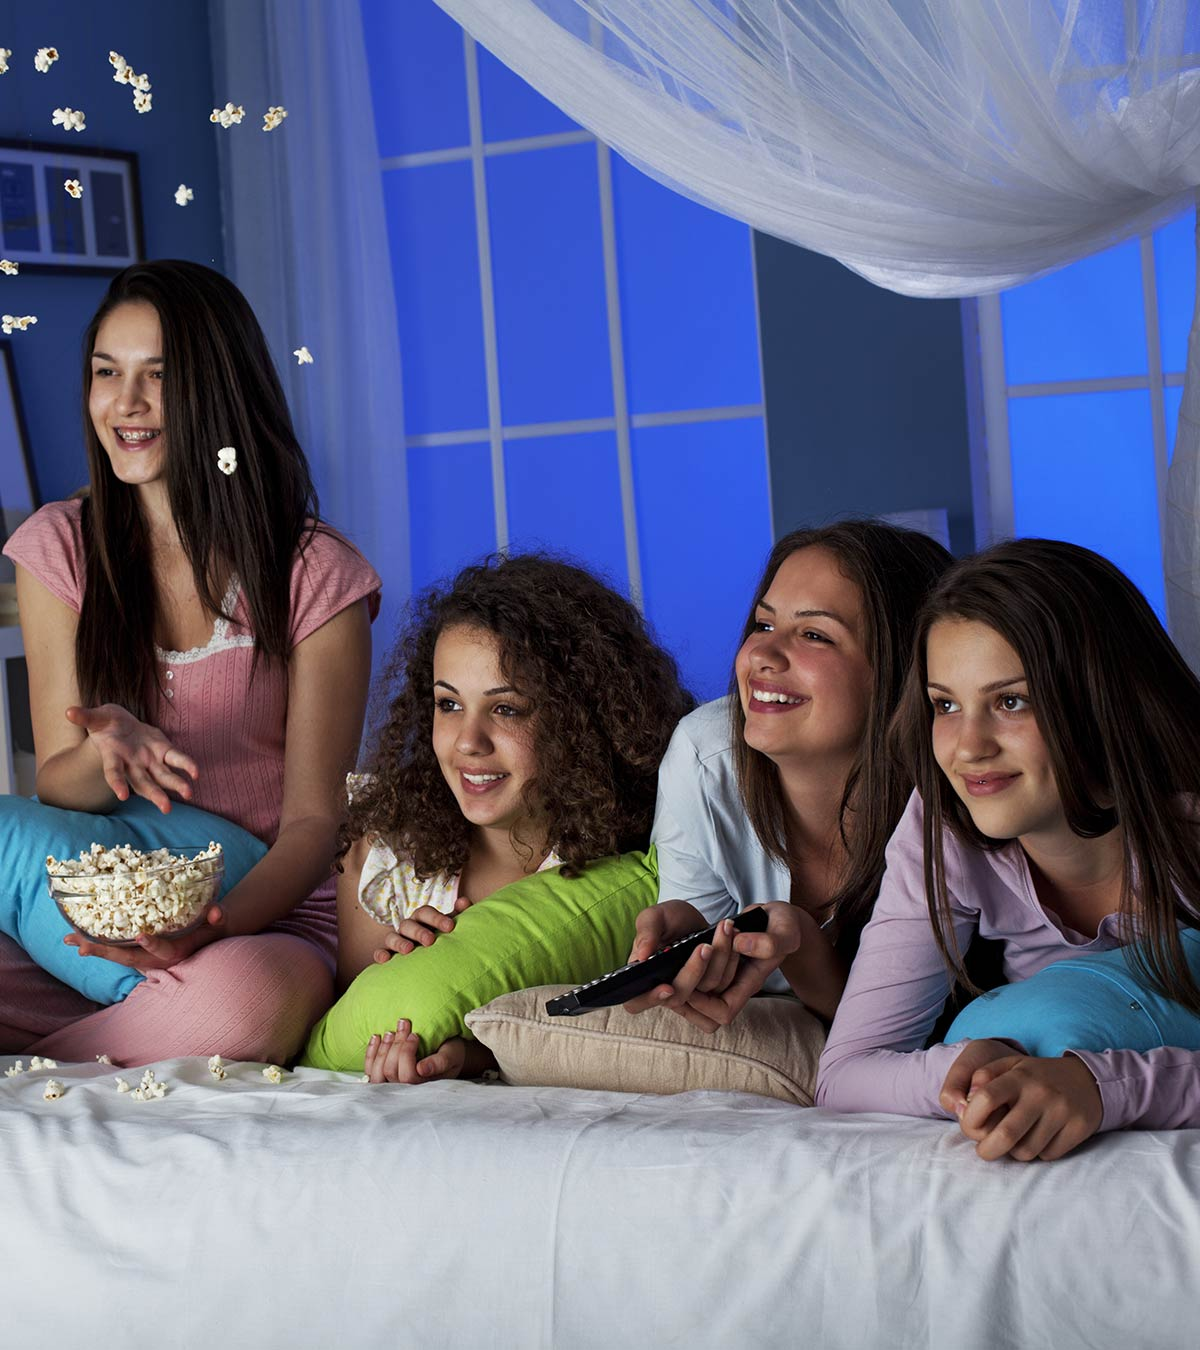 22 Fun Sleepover Games And Activities For Teens 9 To 18 Years